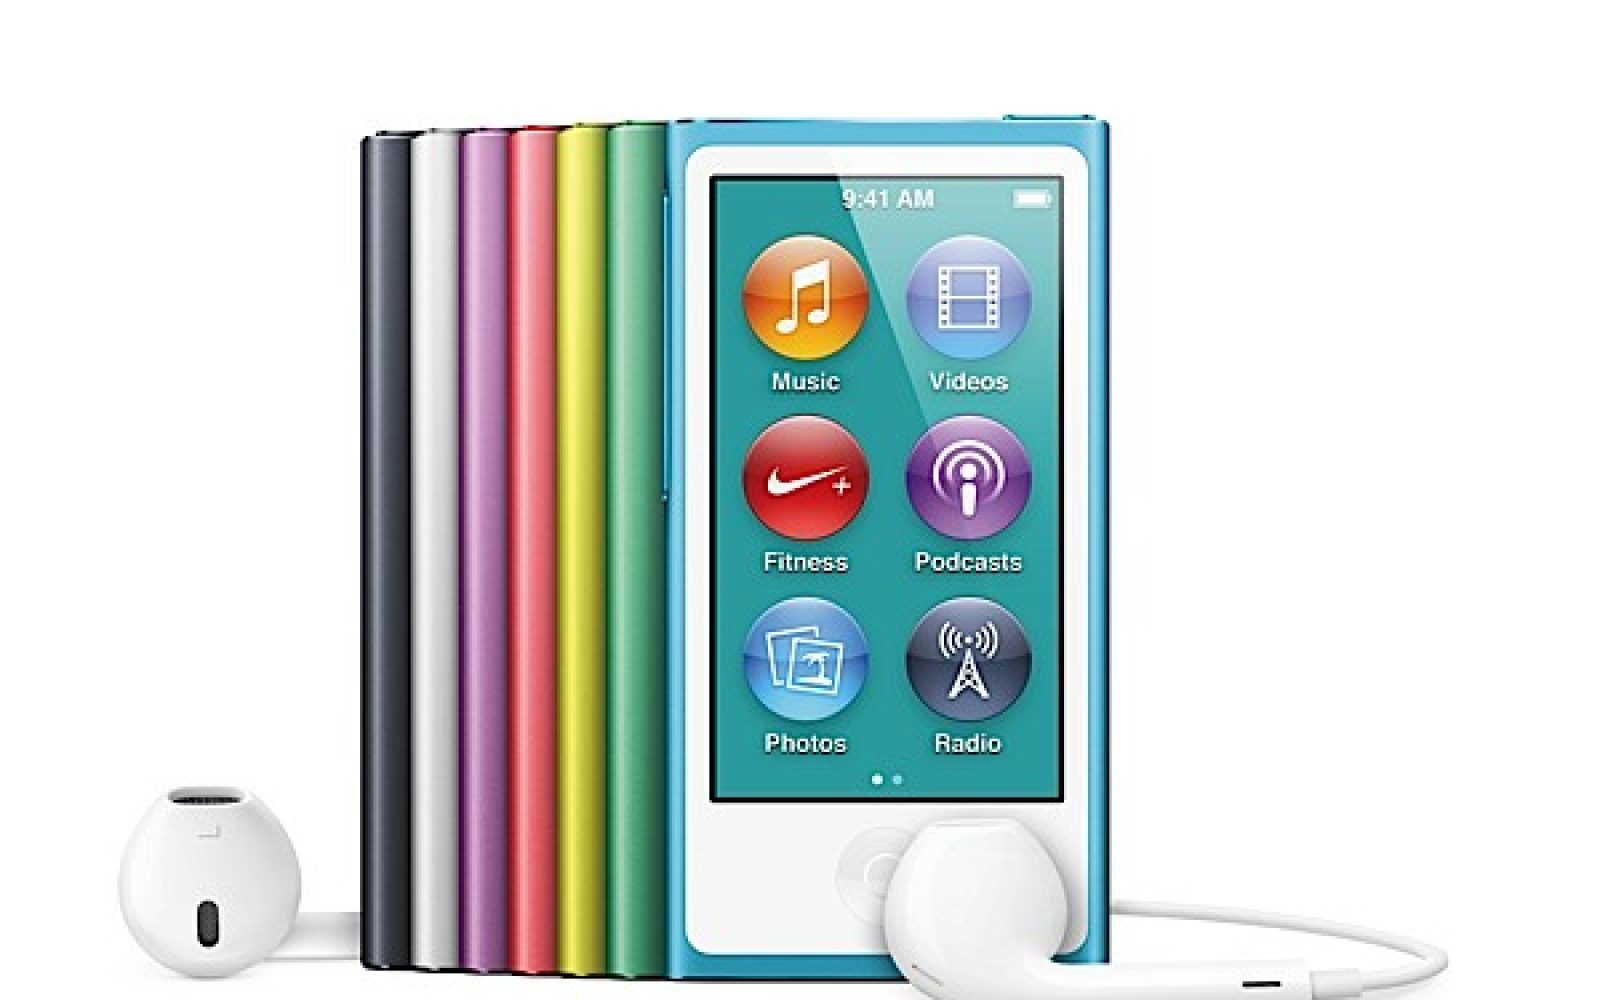 Apple releases minor version 1.0.1 update for new iPod nano